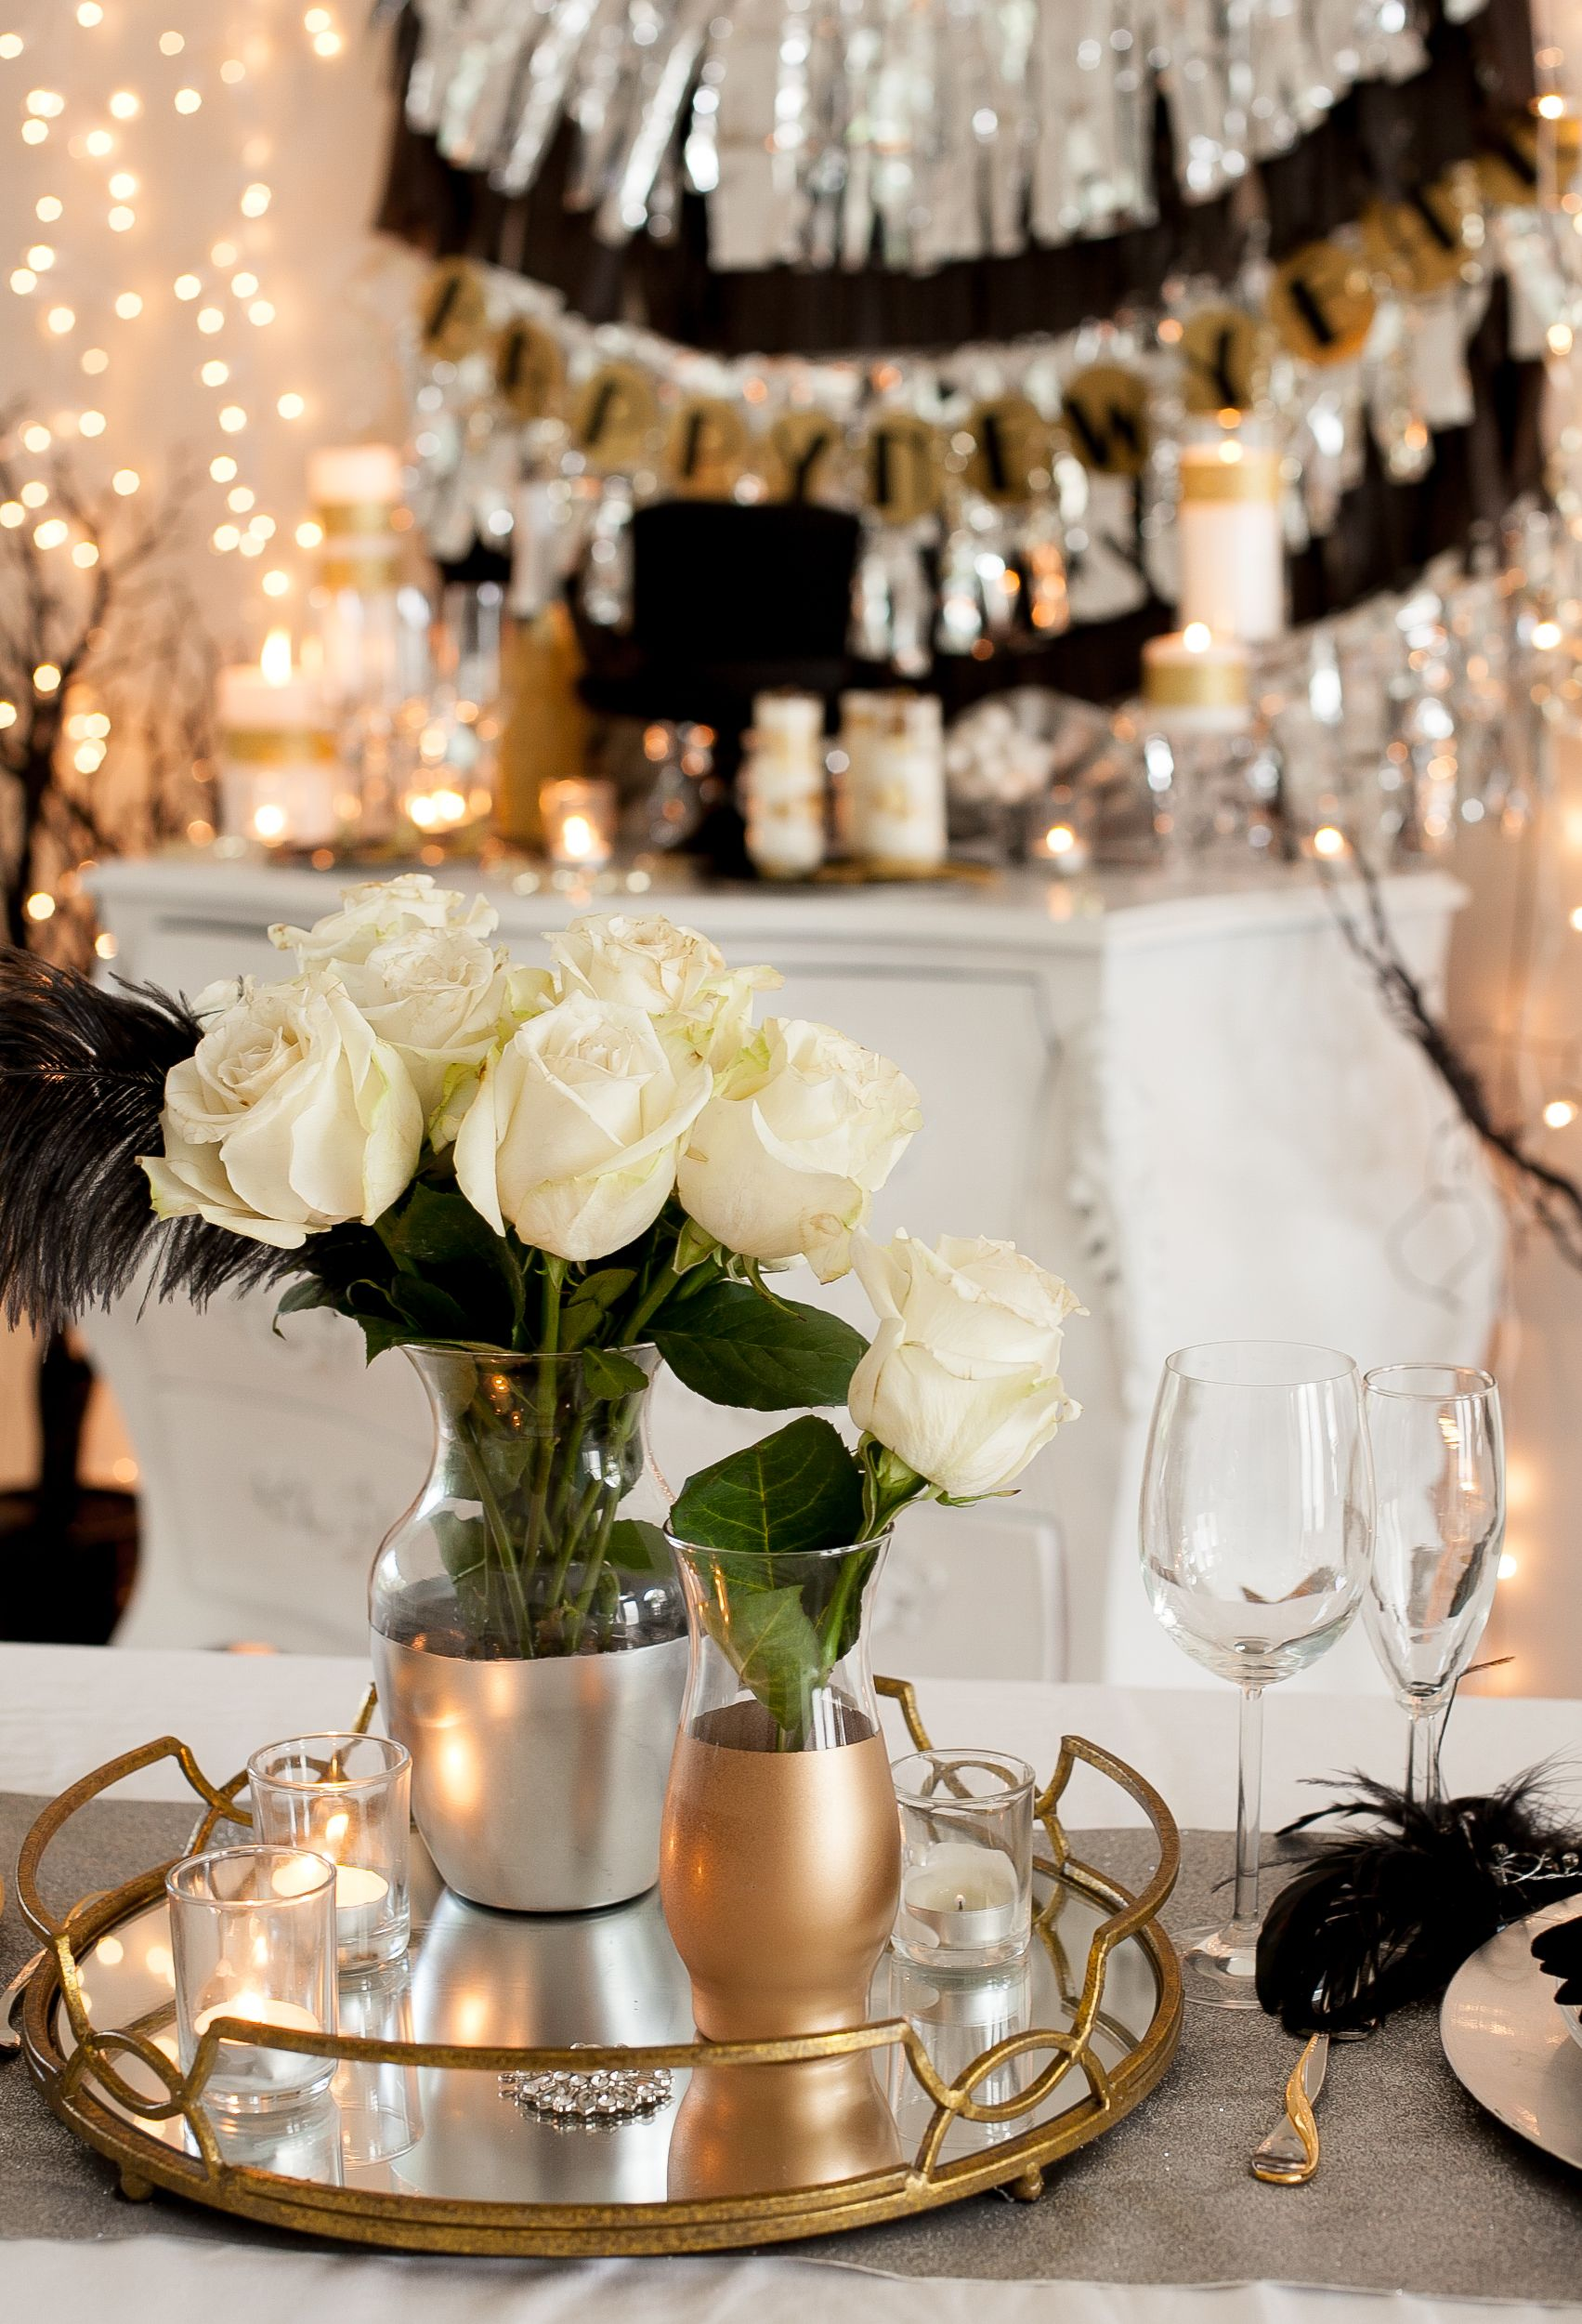 New Years Dinner Party Ideas Part - 16: New Yearu0027s Eve Party Ideas: NYE Party Decorating